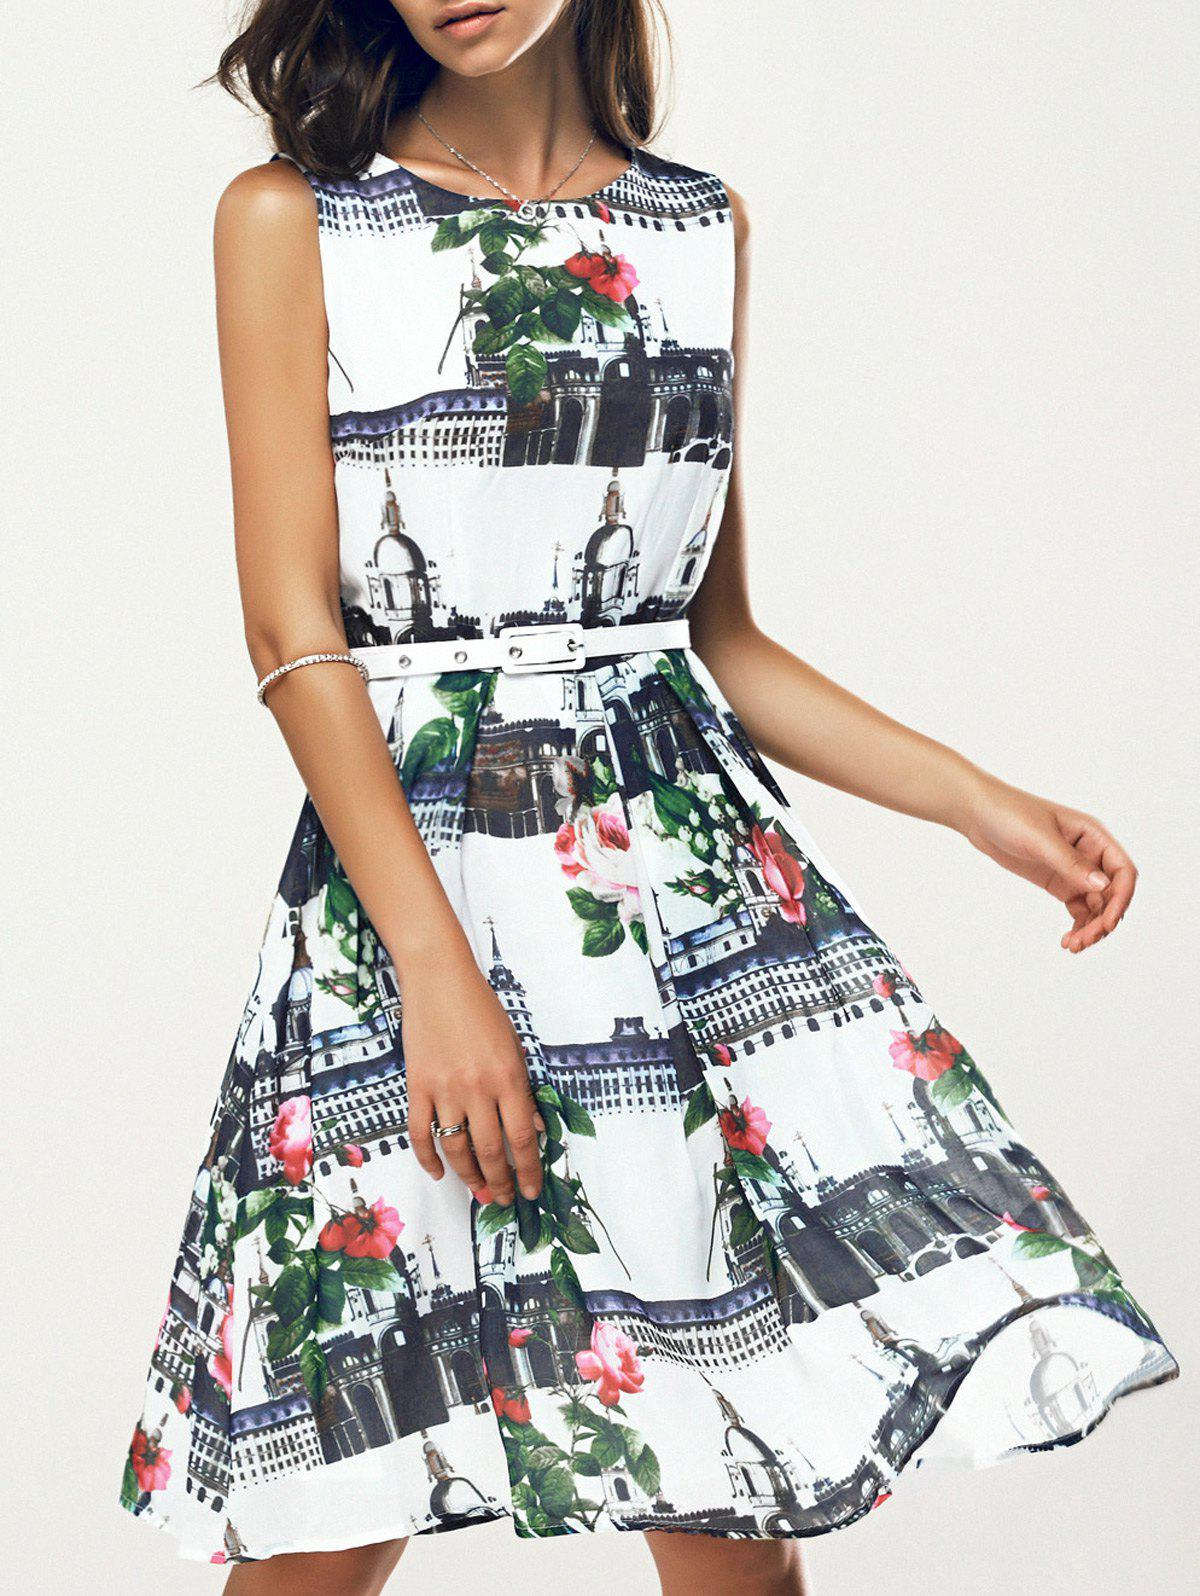 Stunning Jewel Neck Floral Belted Summer Dress For Women - WHITE S